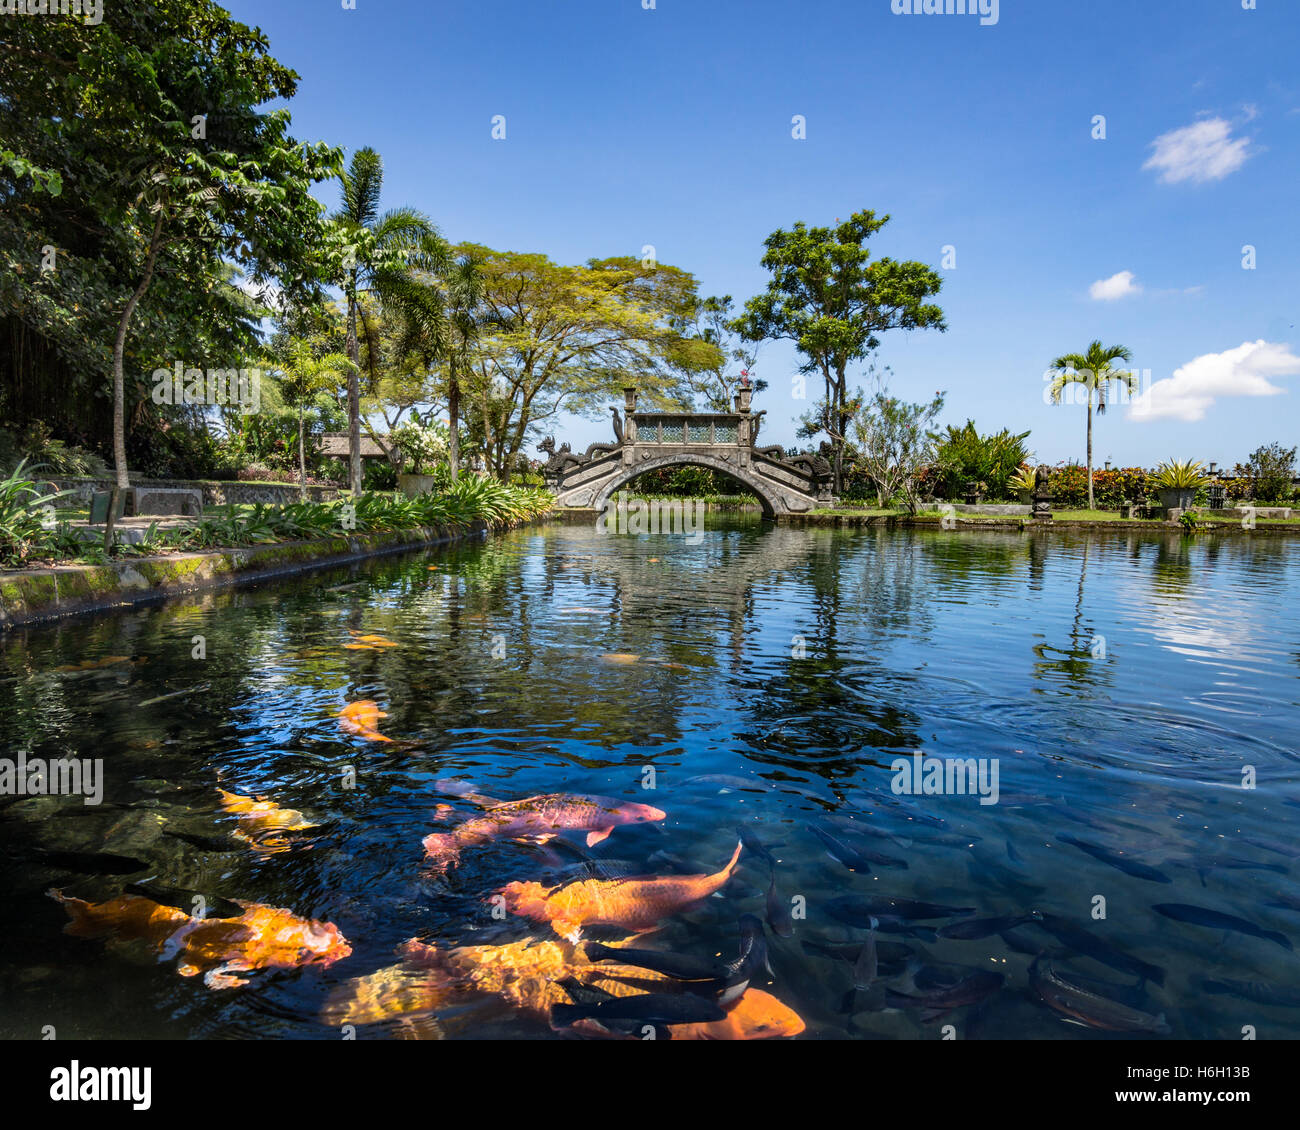 Indonesia Asia Bali Island Tirta Gangga Water Palace: Mount Agung Bali Eruption Stock Photos & Mount Agung Bali